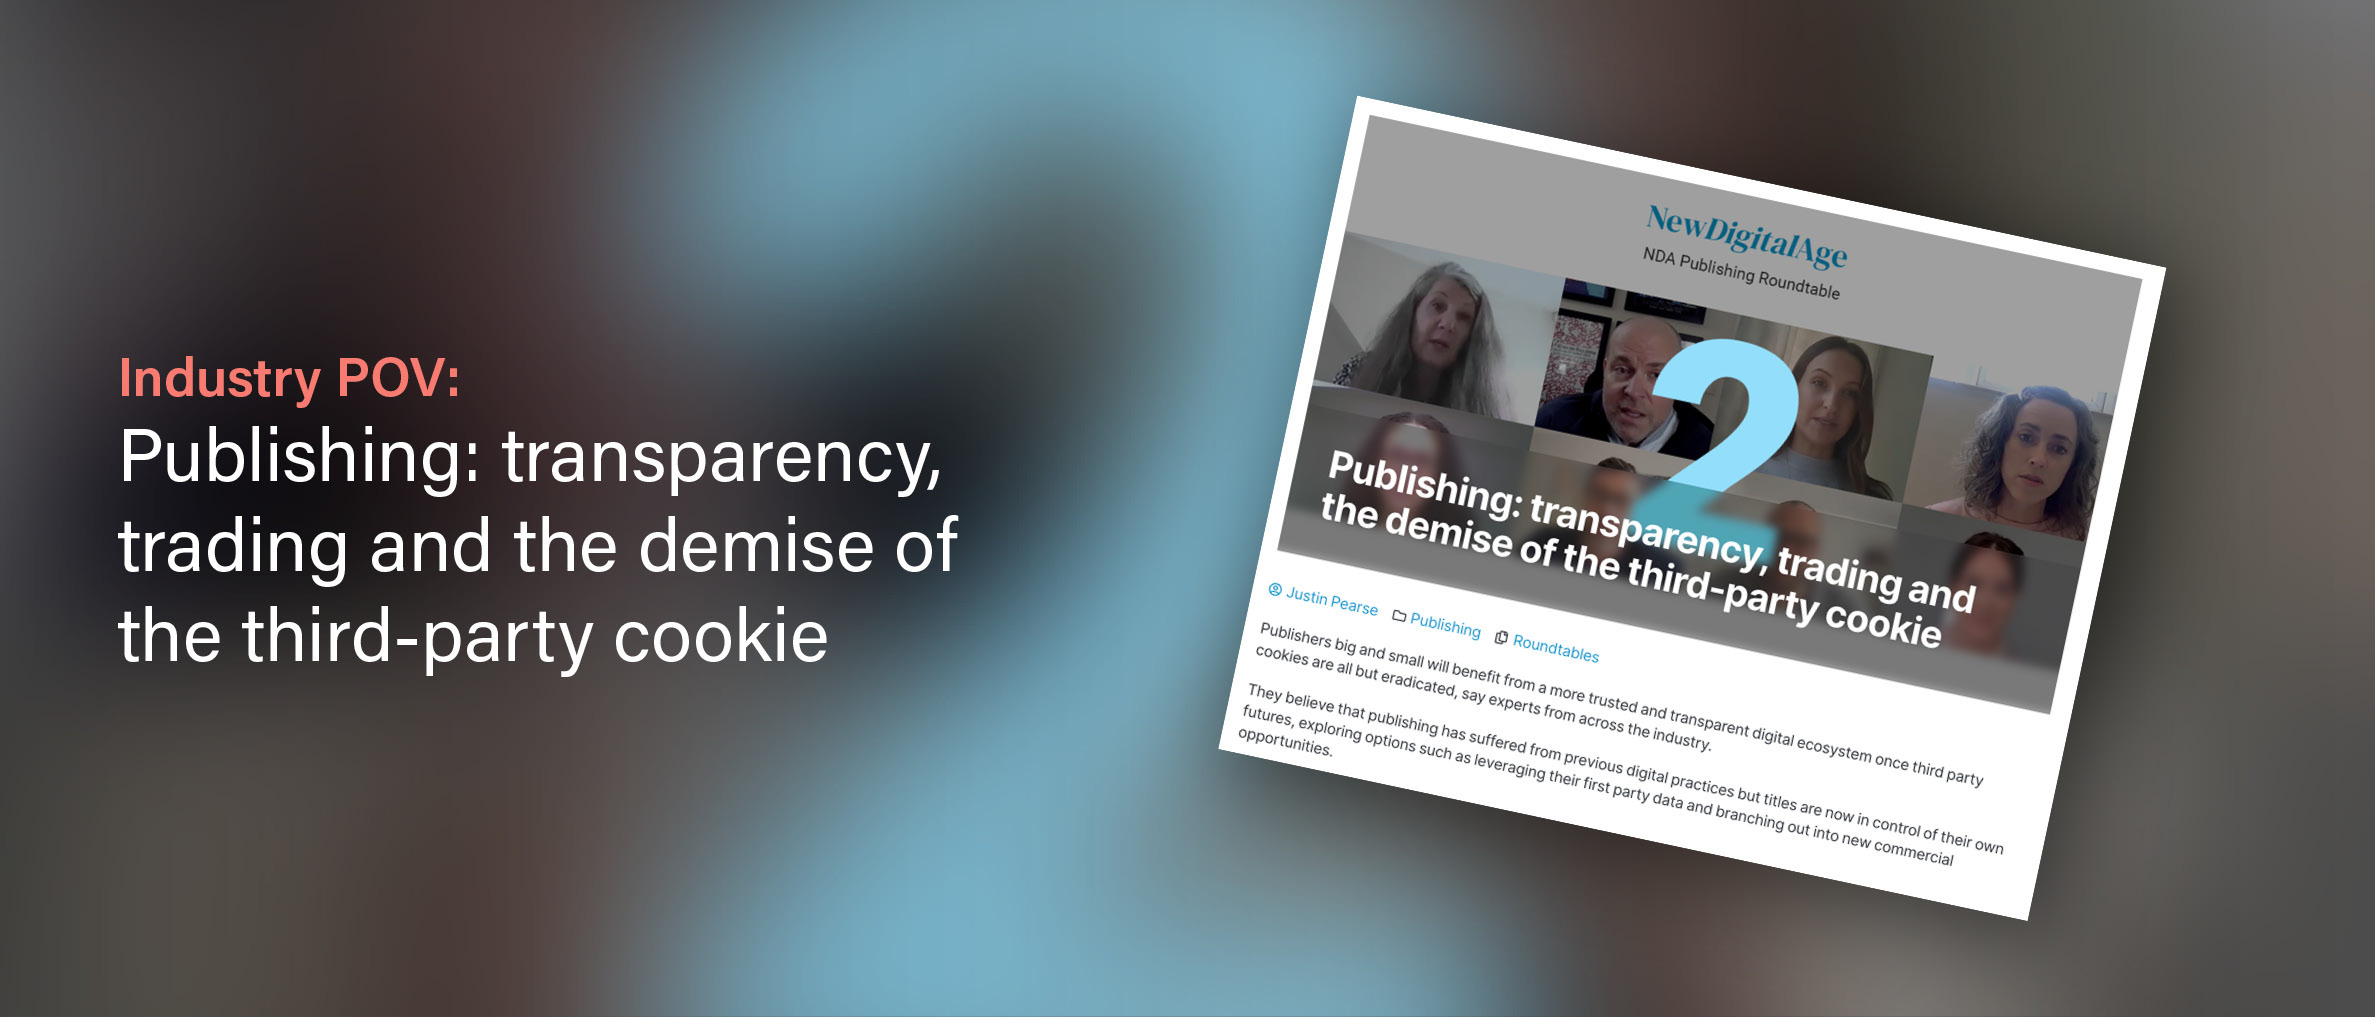 New Digital Age: Publishing—Transparency, Trading And The Demise of The Third-Party Cookie